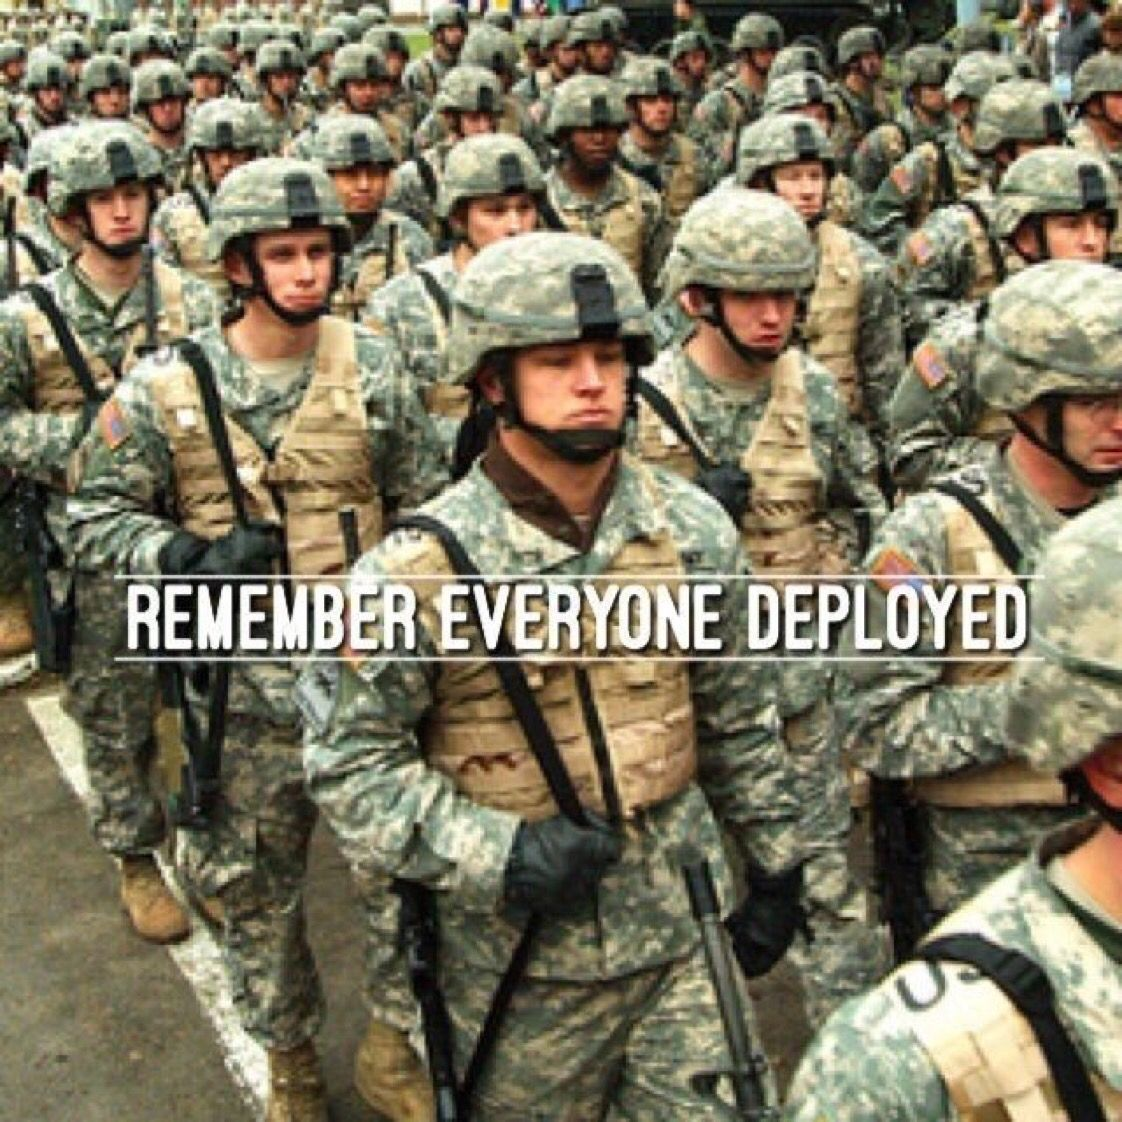 To all our deployed. Thank you for your service and dedication. We value our freedom and YOU. #RedFriday - Remember Everyone Deployed.  <br>http://pic.twitter.com/uT8UcUuO0I